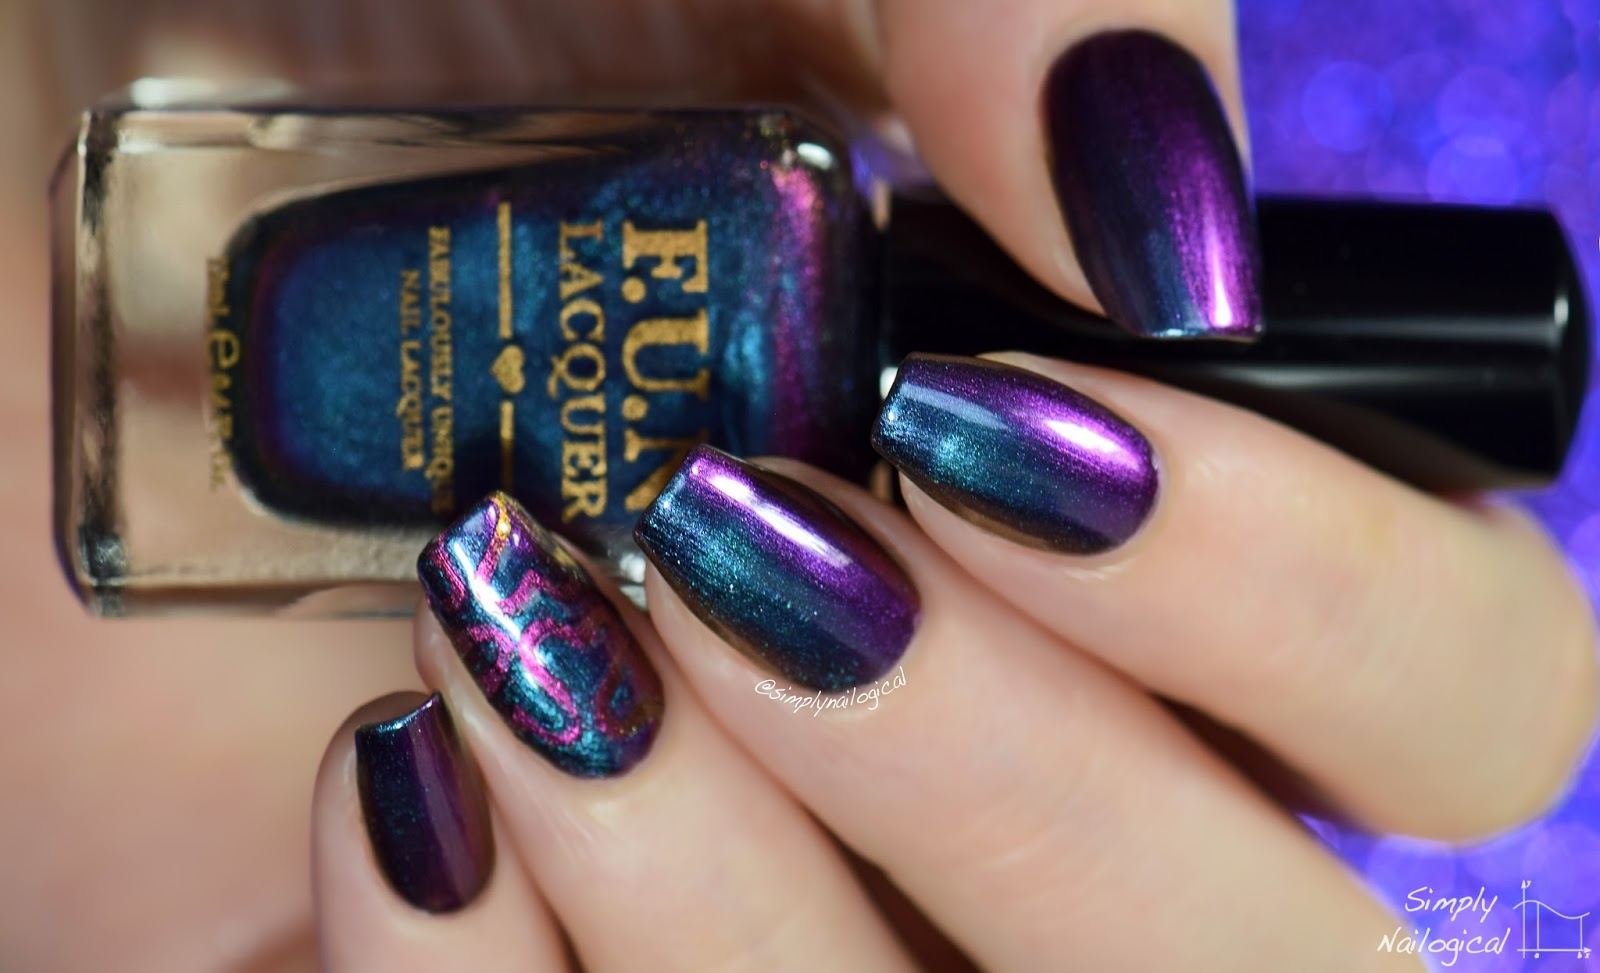 FUN Lacquer 2015 Love collection - Eternal Love